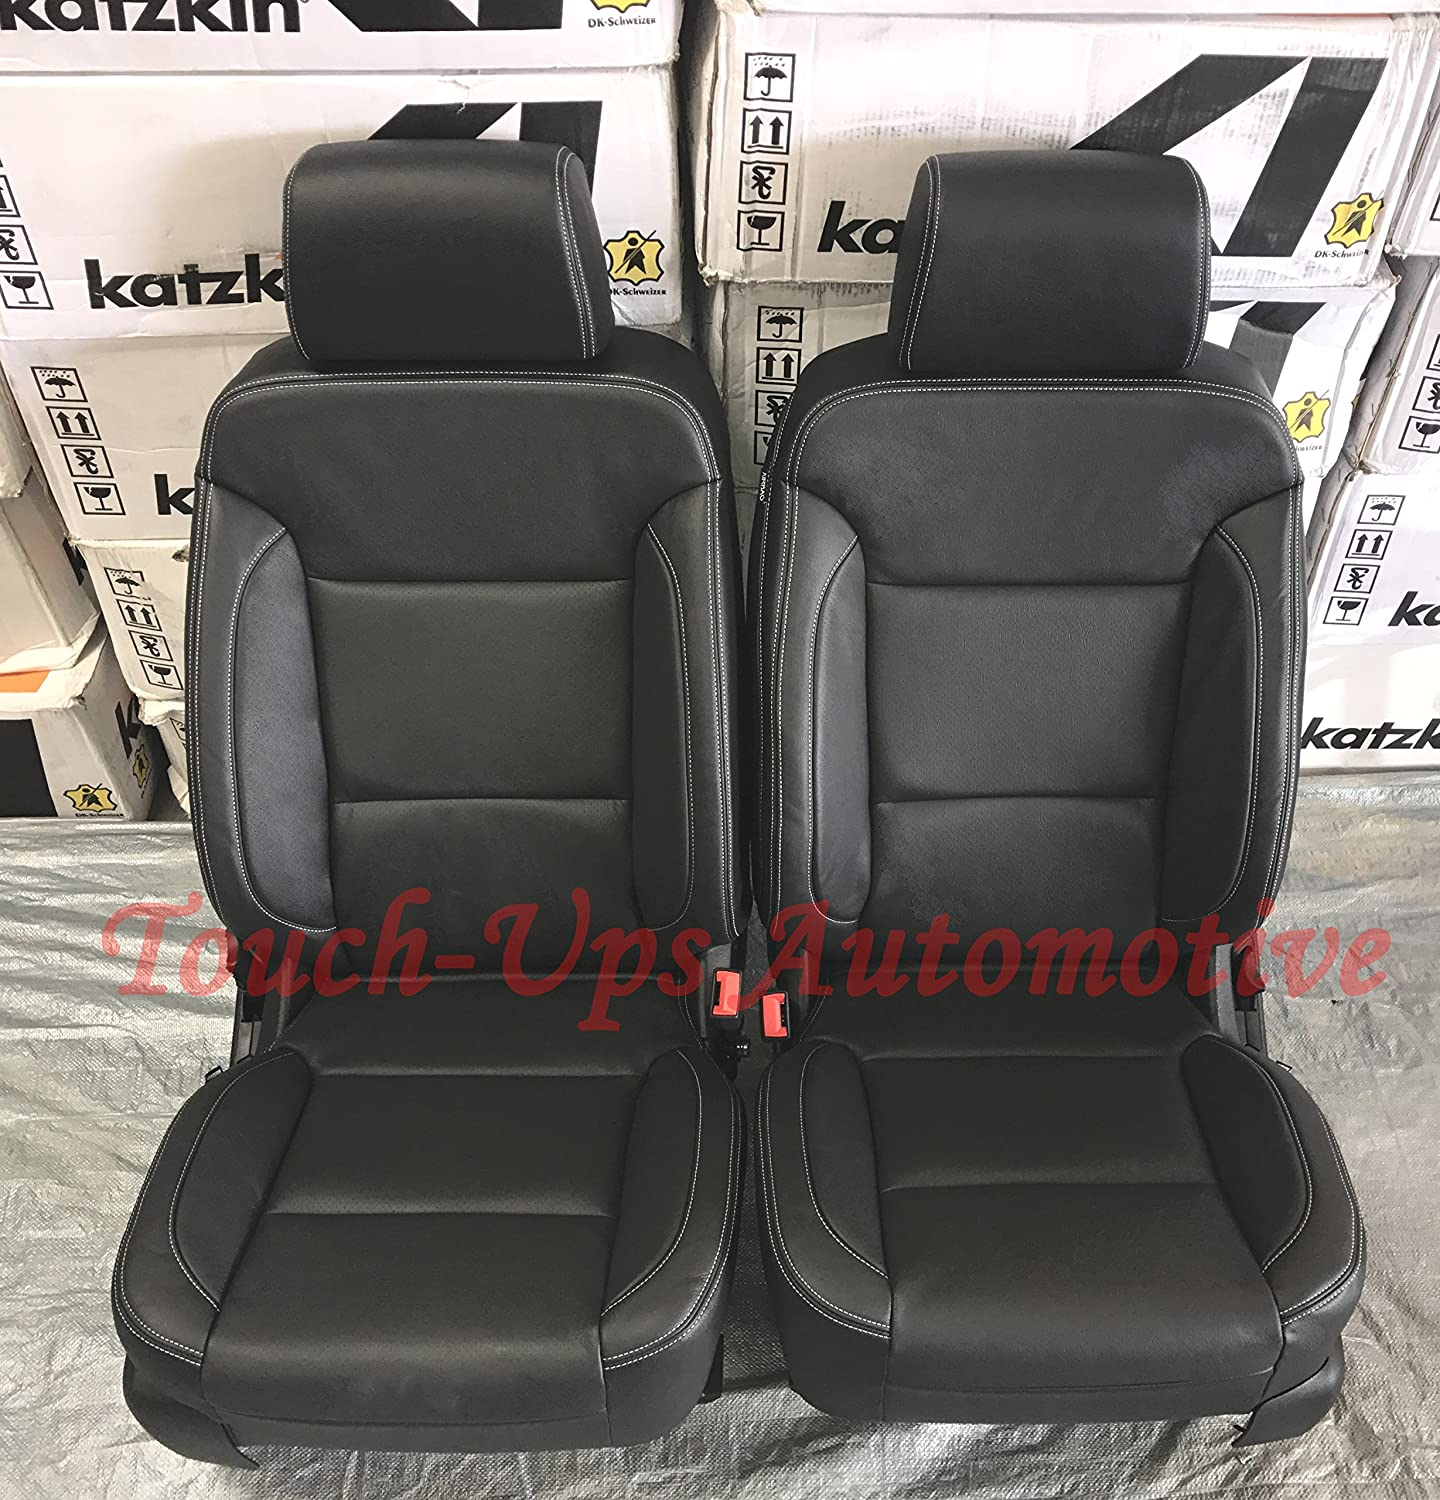 Excellent Katzkin Black Leather Seat Covers For 2016 2017 2018 Chevrolet Silverado Crew Cab Lt Andrewgaddart Wooden Chair Designs For Living Room Andrewgaddartcom